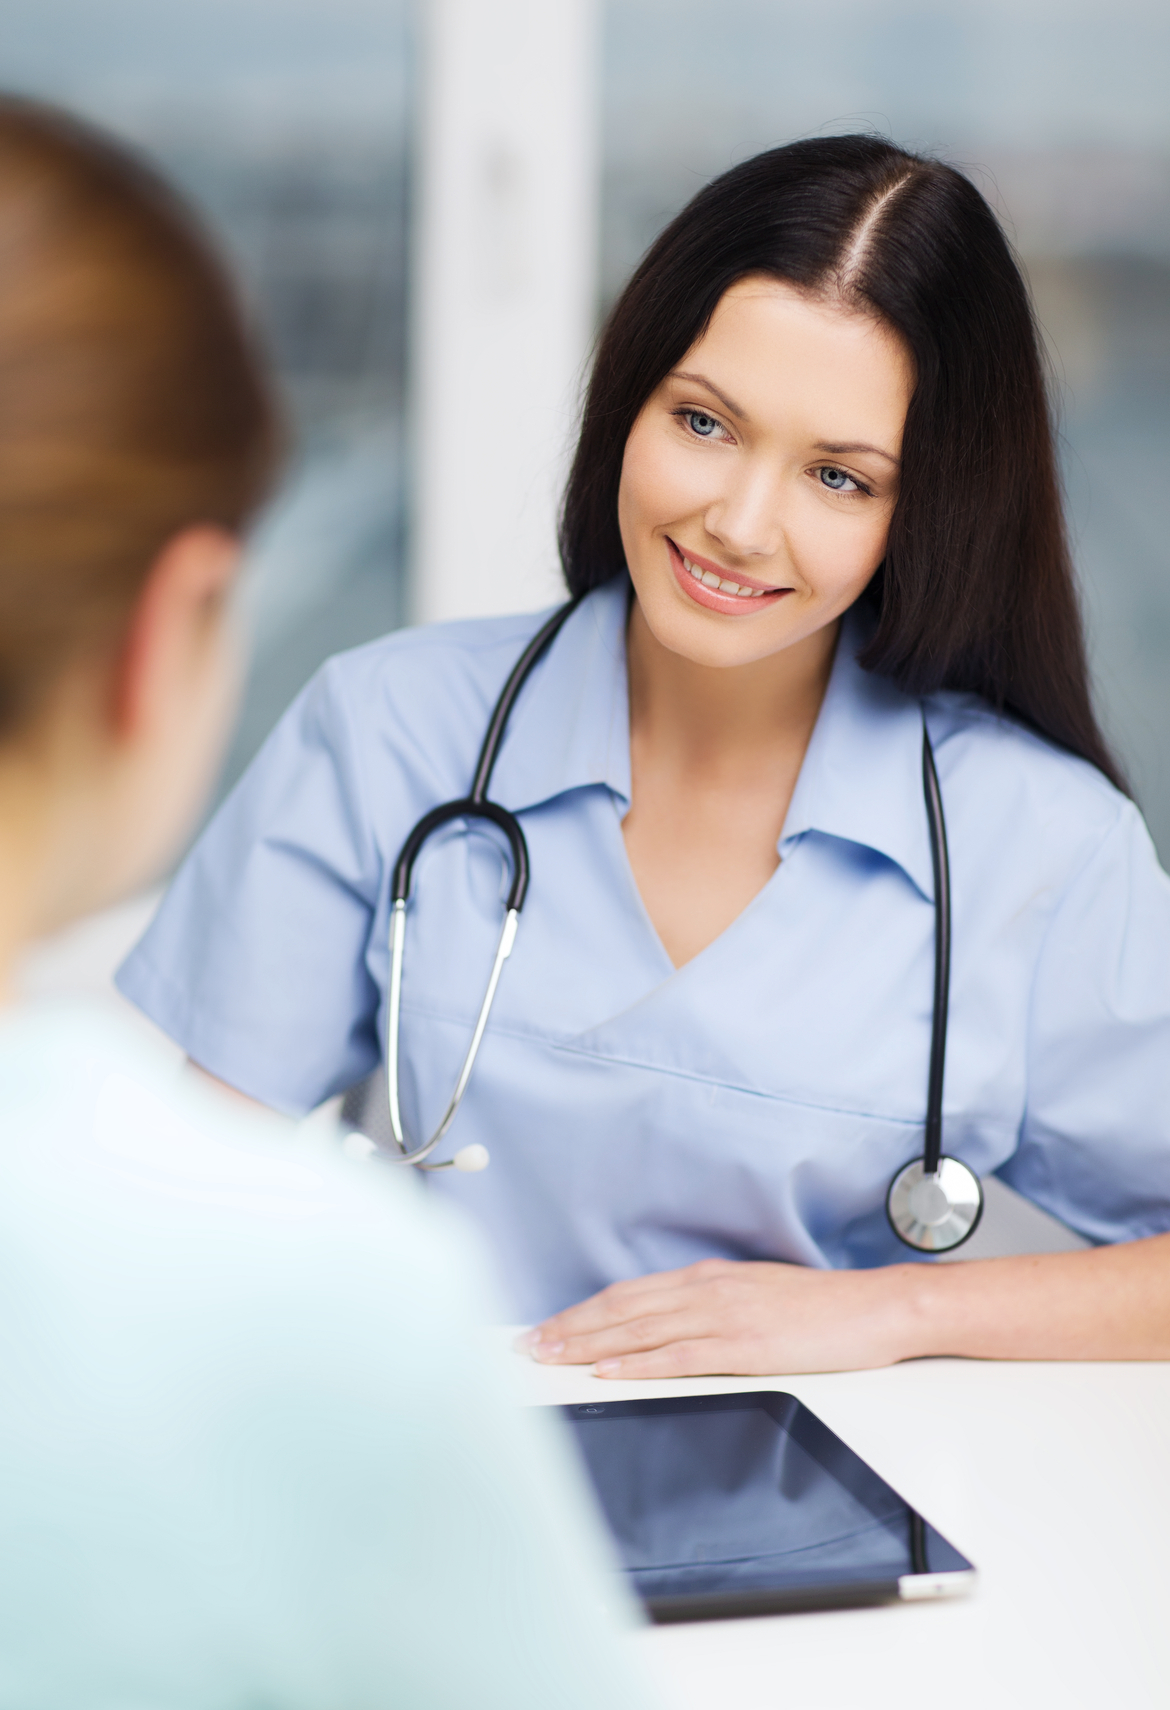 EHR_Software_-_Happy_Patient_Doctor_with_Tablet_PC